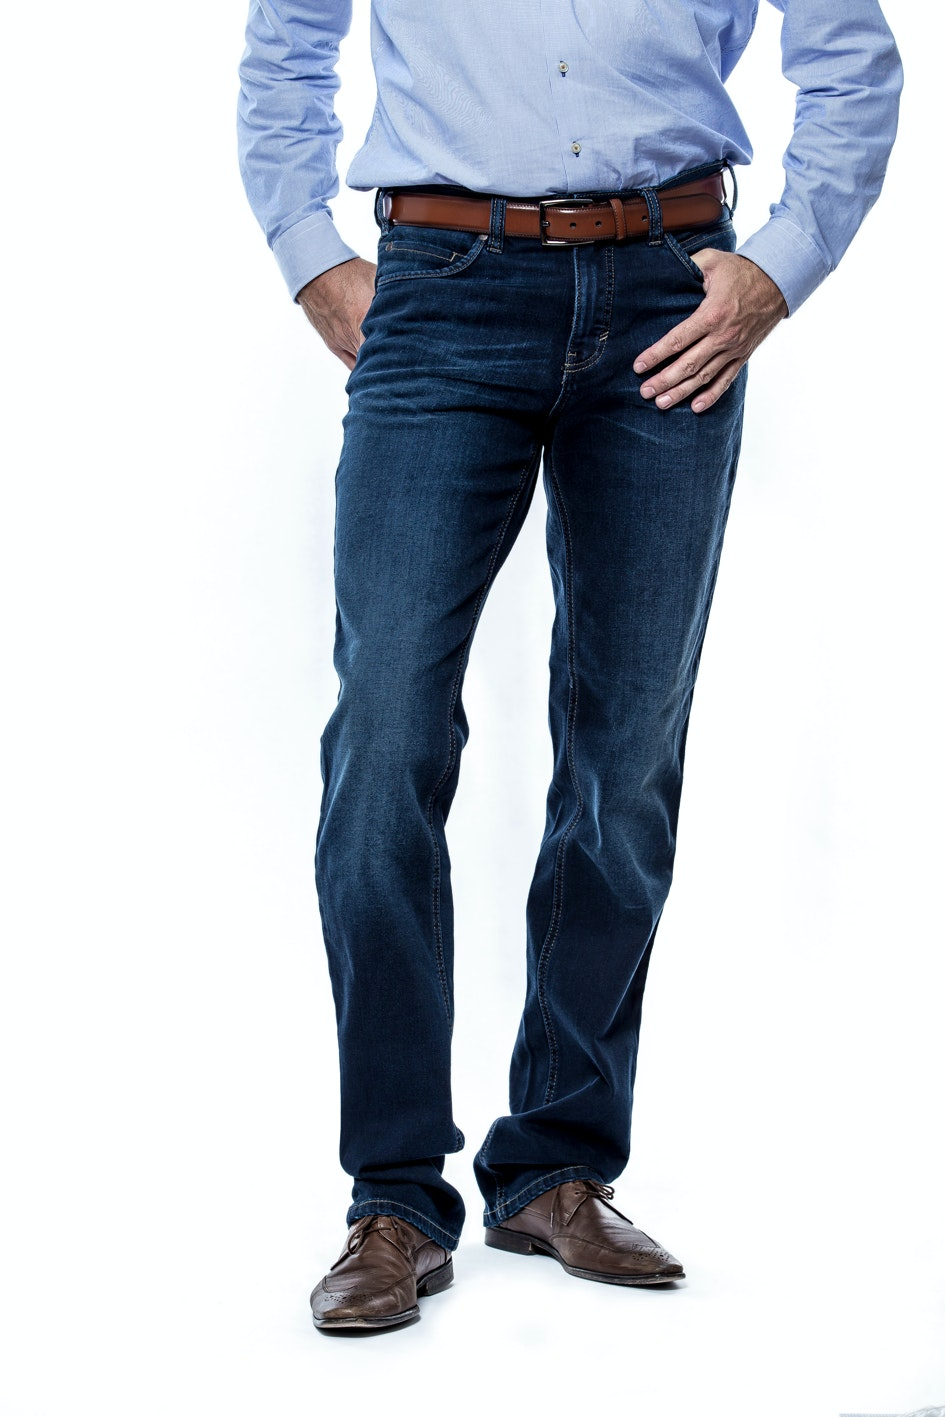 Paddock's Ranger Stretch dark blue